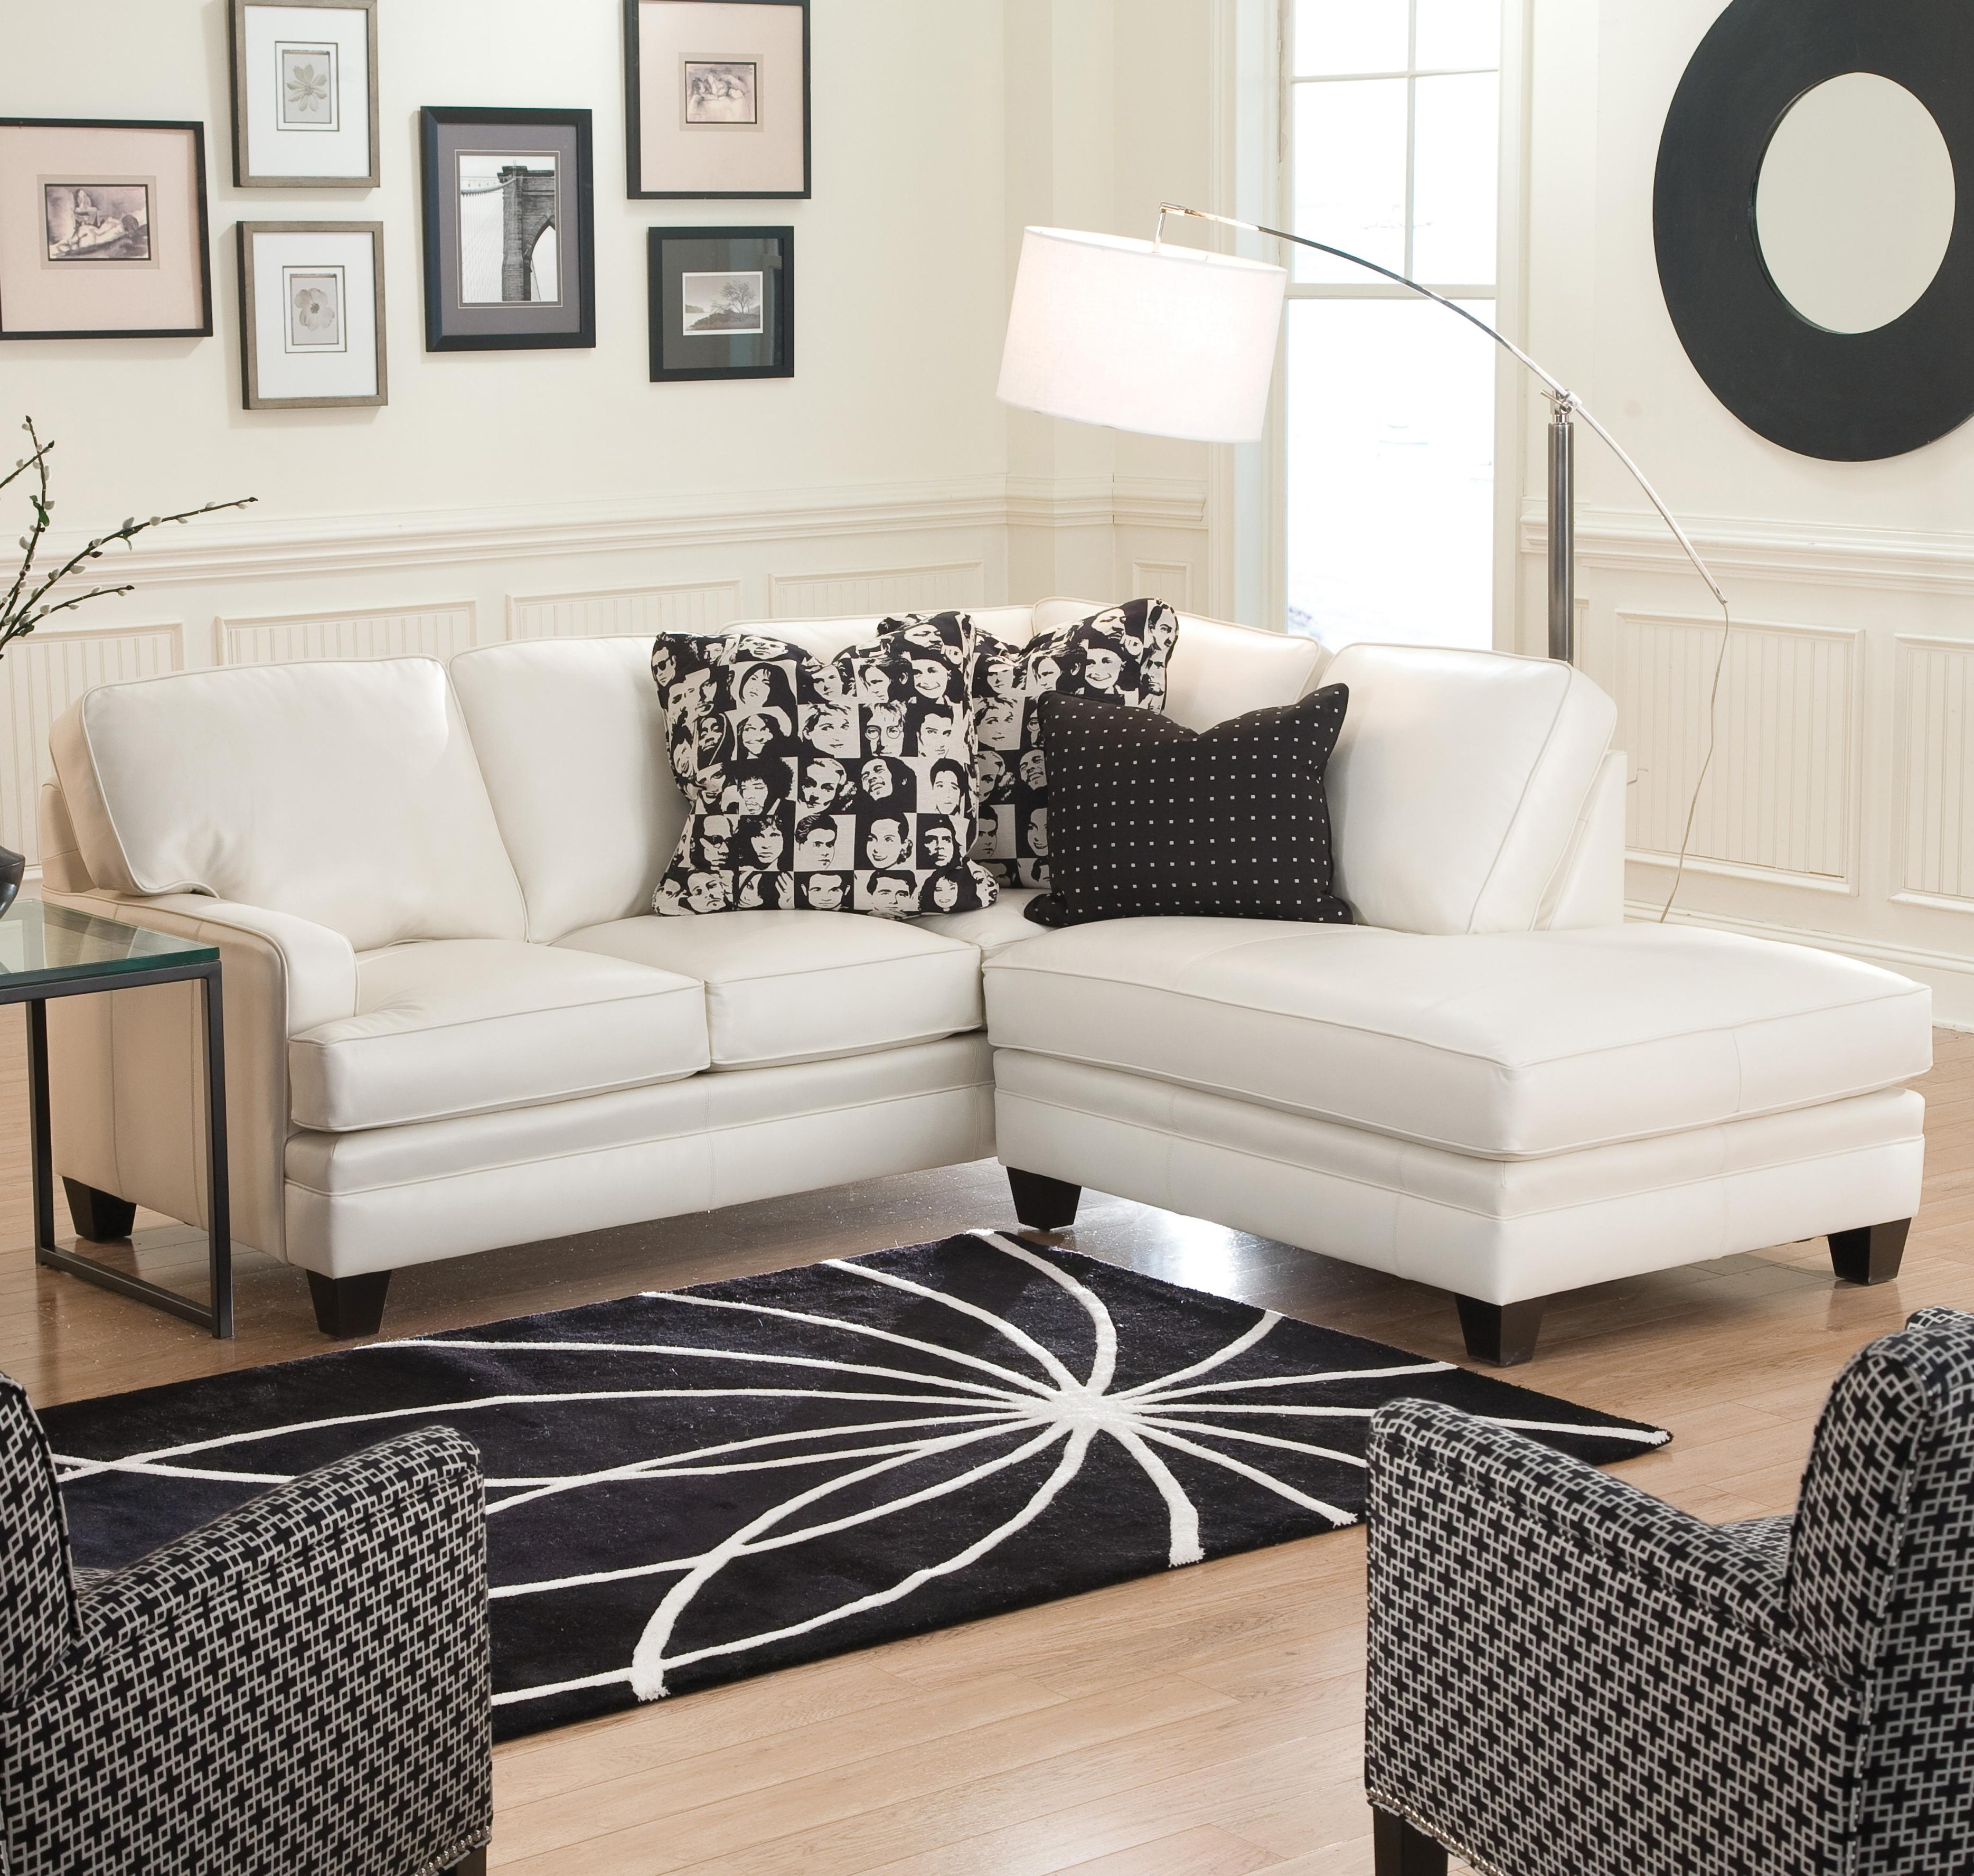 Small Sectional Sofa With Contemporary Looksmith Brothers (View 14 of 20)